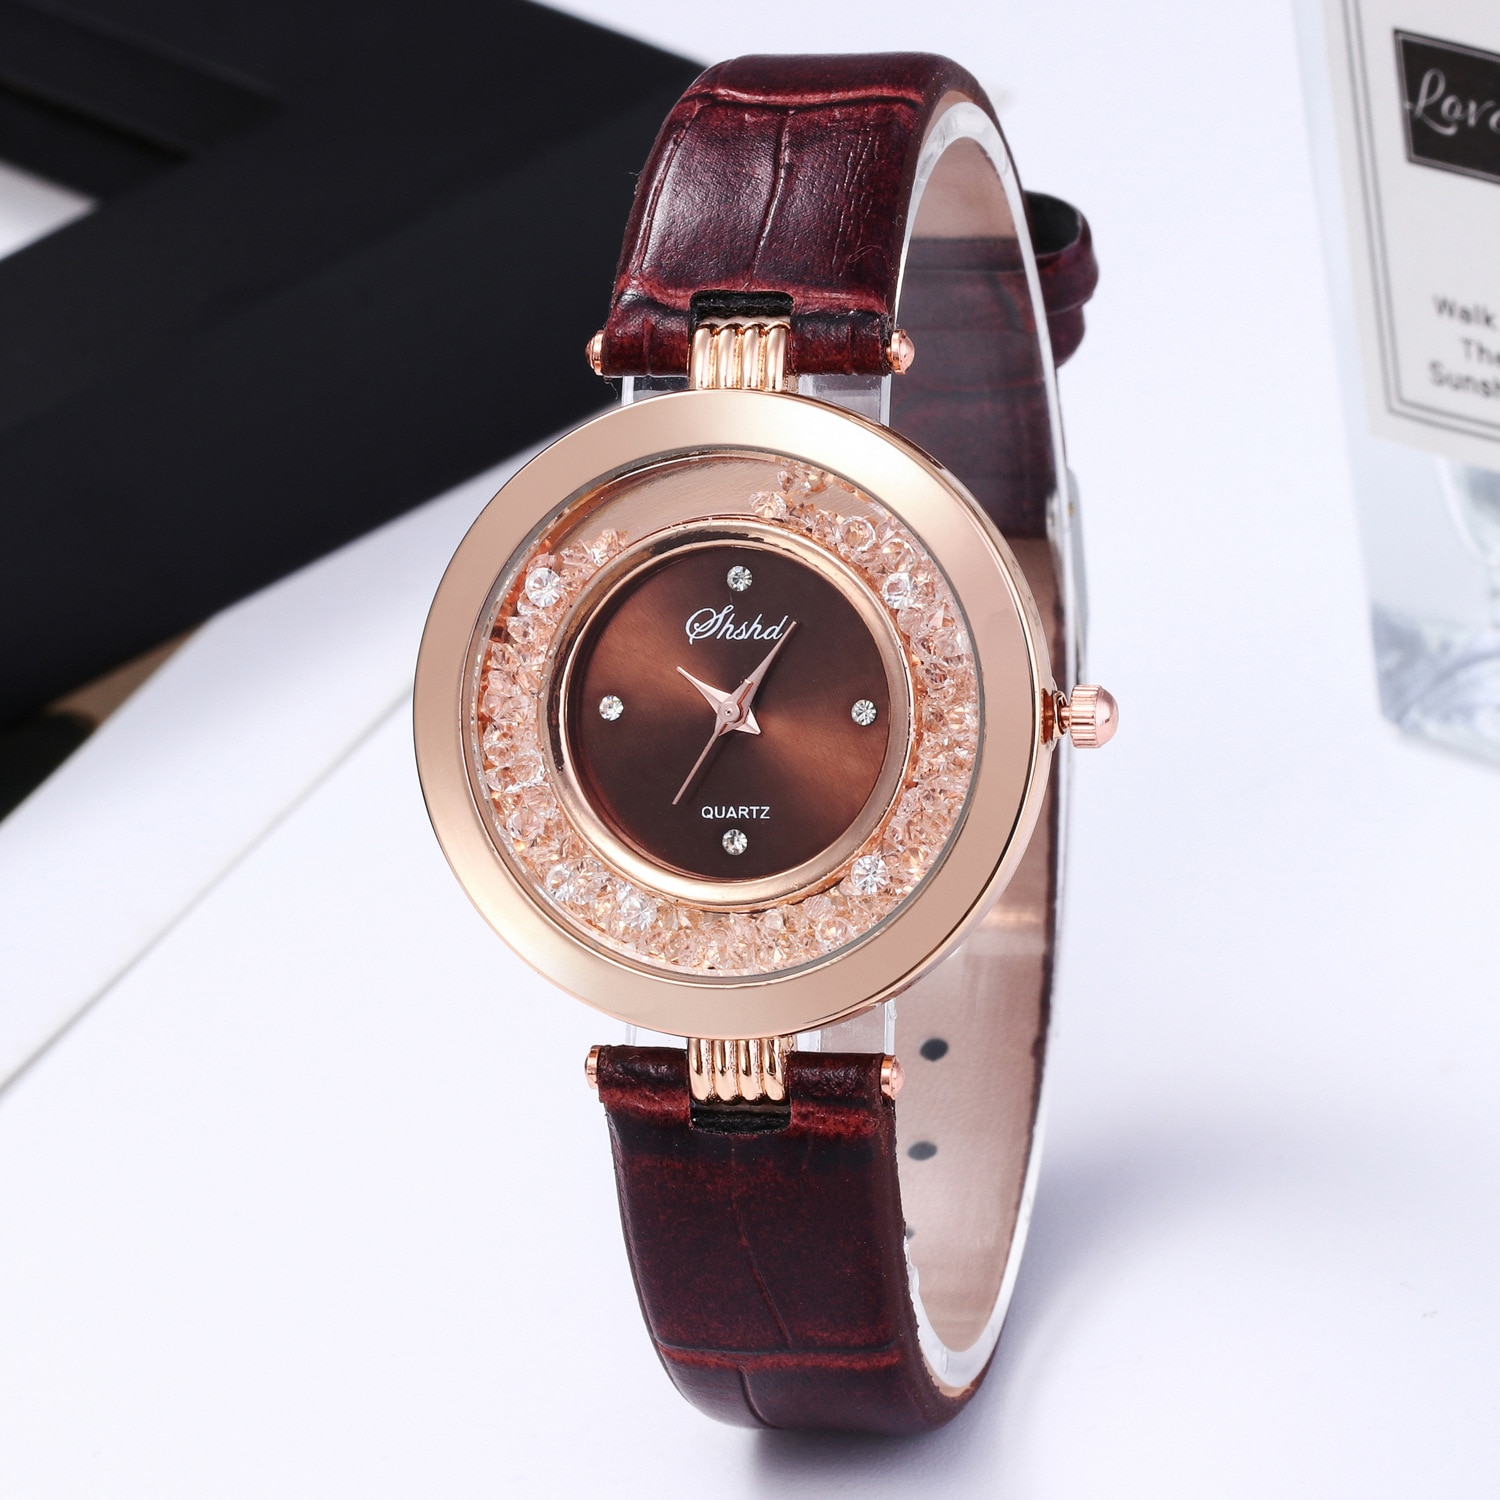 2020 NEW Watch Women Fashion Casual Leather Belt Watches Simple Ladies' Small Dial Quartz Clock Dres